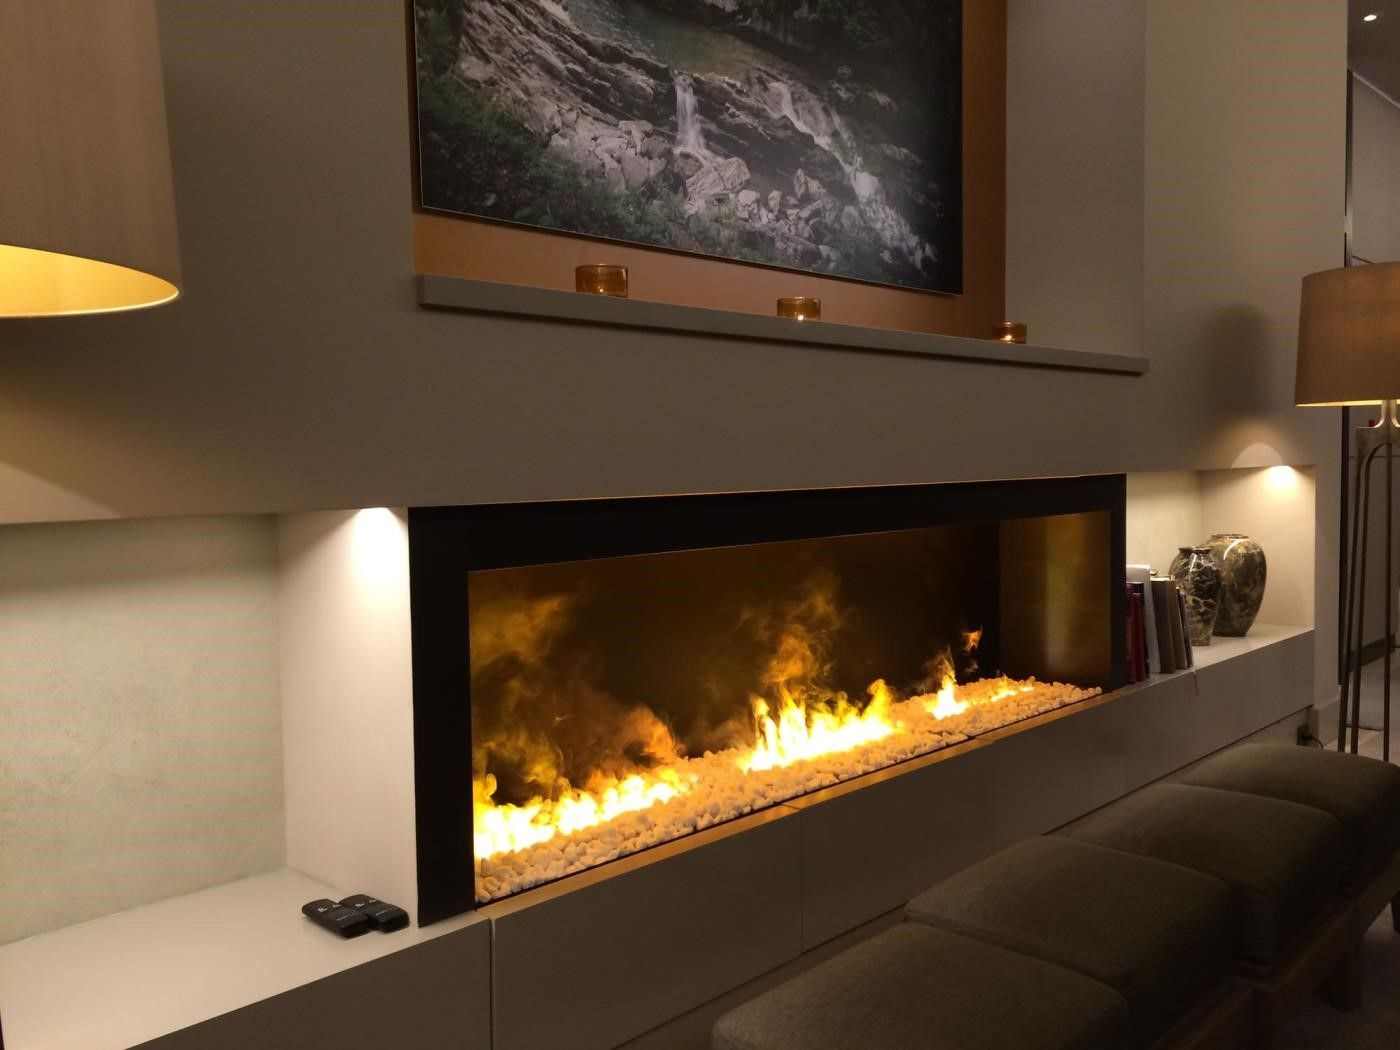 best  wall mount electric fireplace ideas on pinterest  wall  - wall mount electric fireplace under tv wwwhandymangoldcoastcom